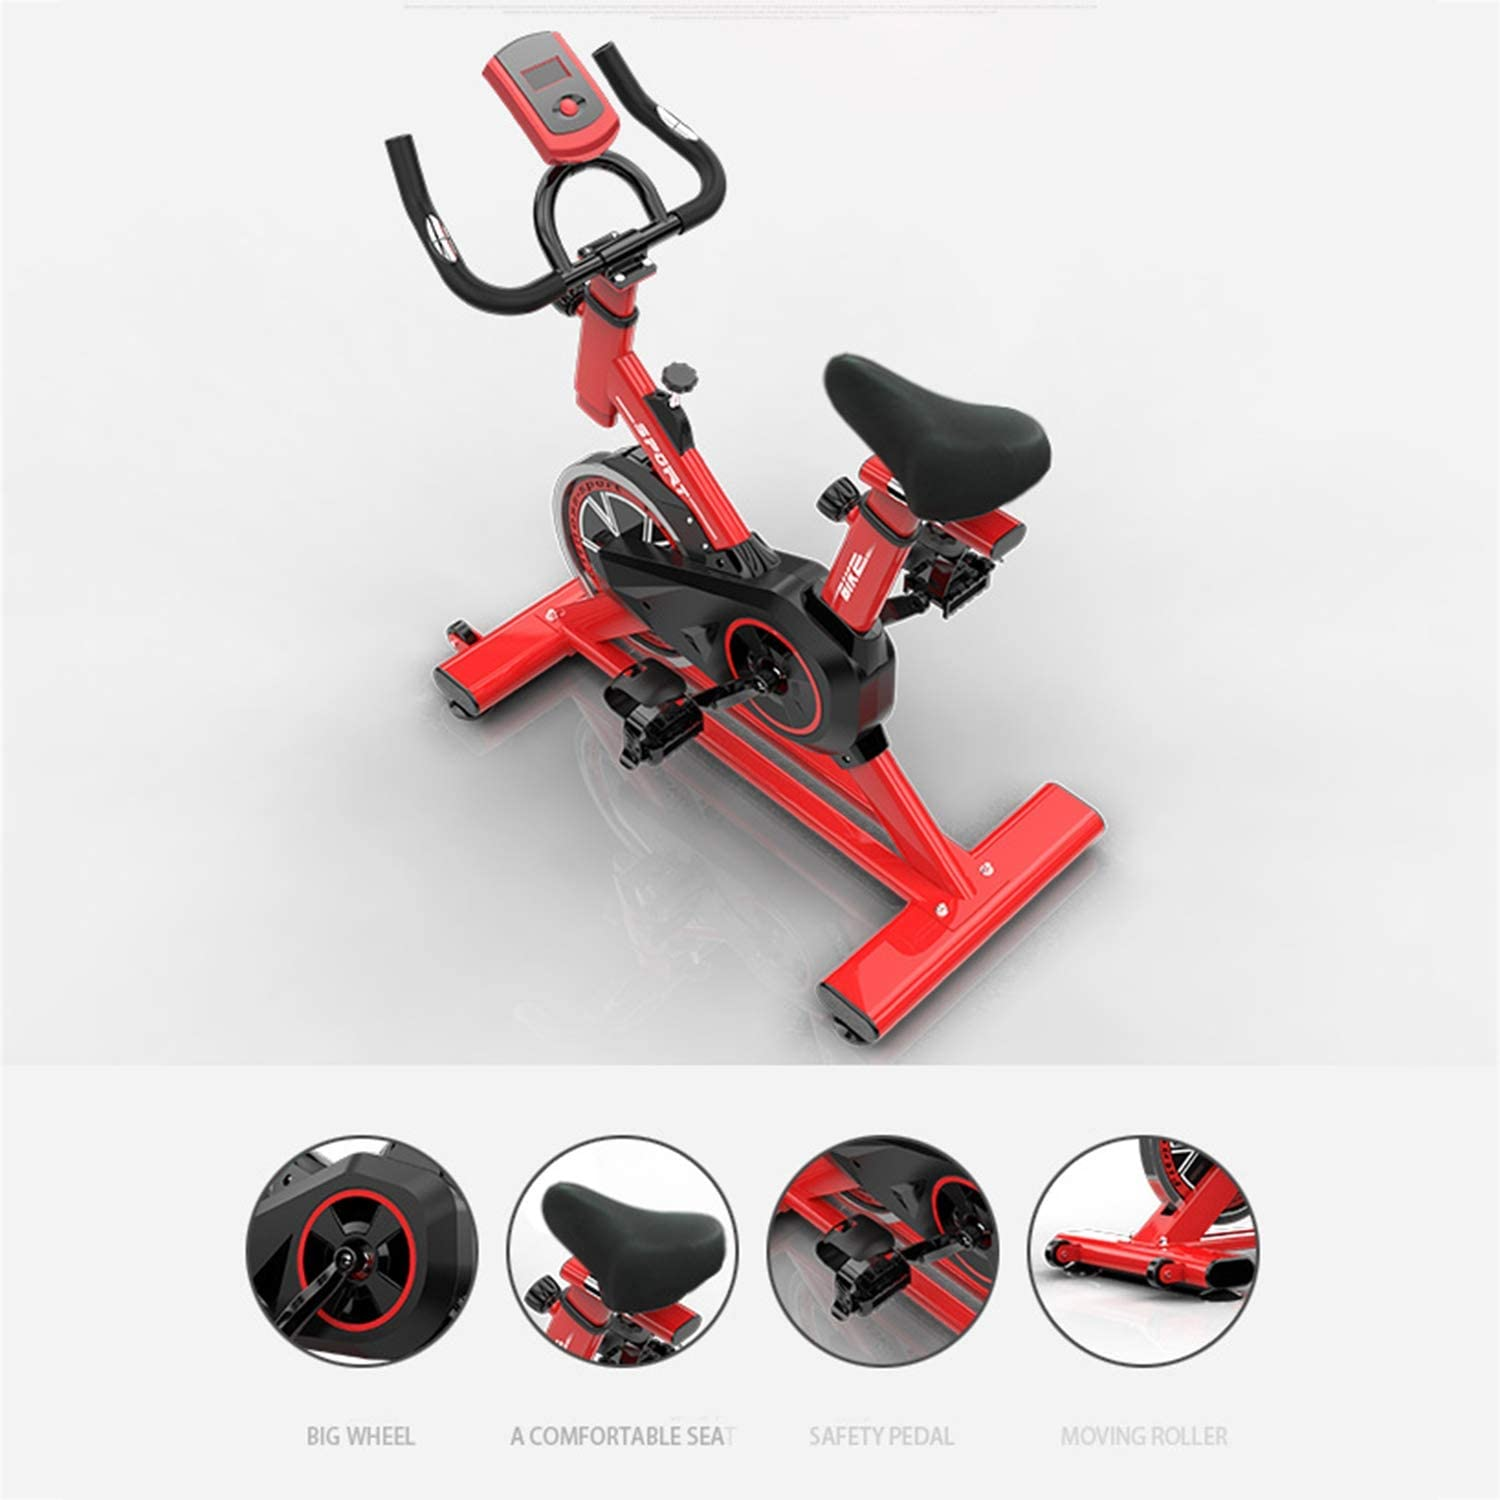 Fitness Bike And Ab Trainer Sporting Equipment Ideal Cardio Trainer,Red YMXLXL F-Bike And F-Rider